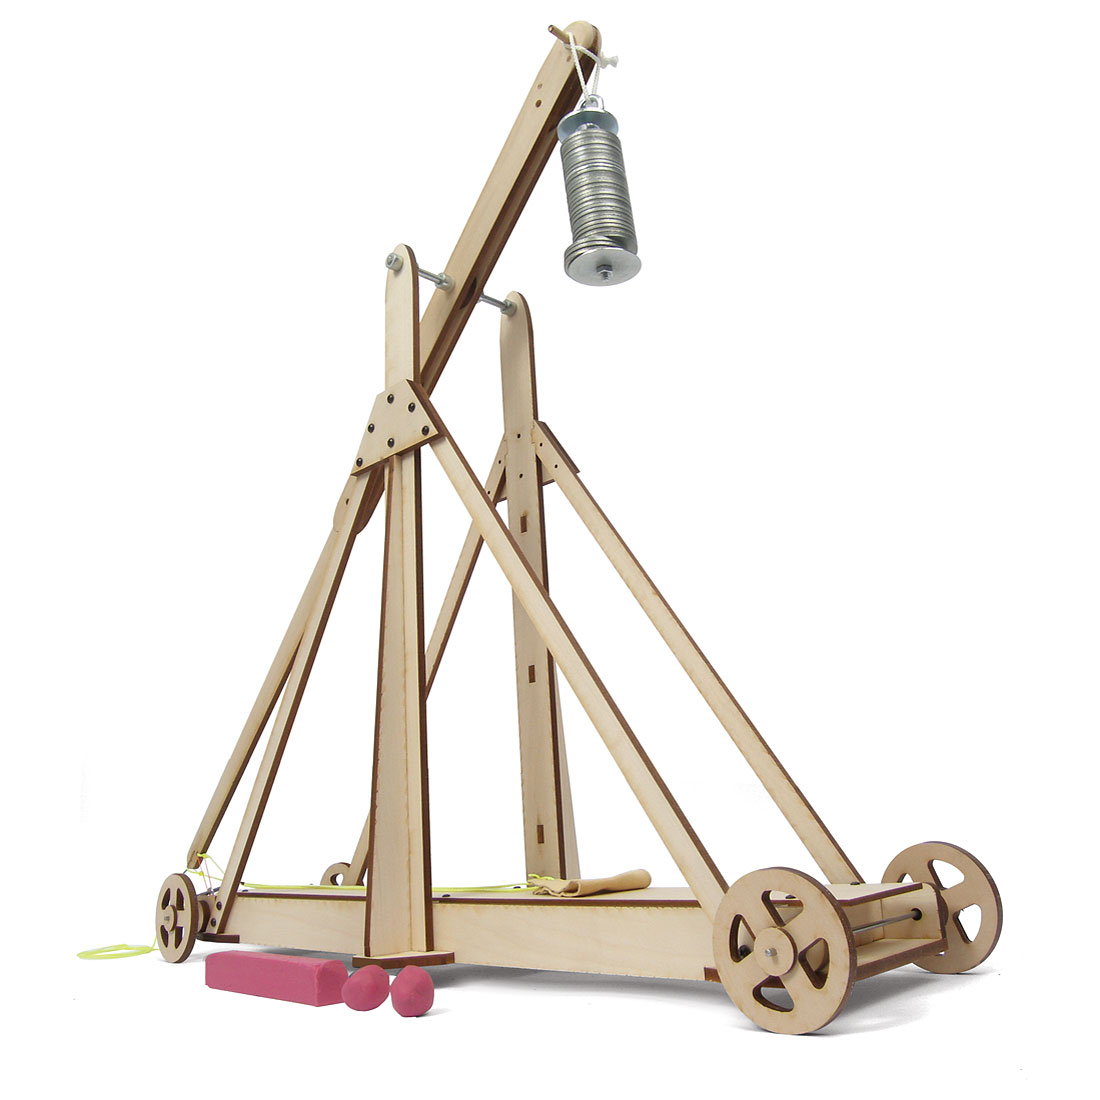 Large trebuchet demonstrator w35230 for Catapult design plans for physics